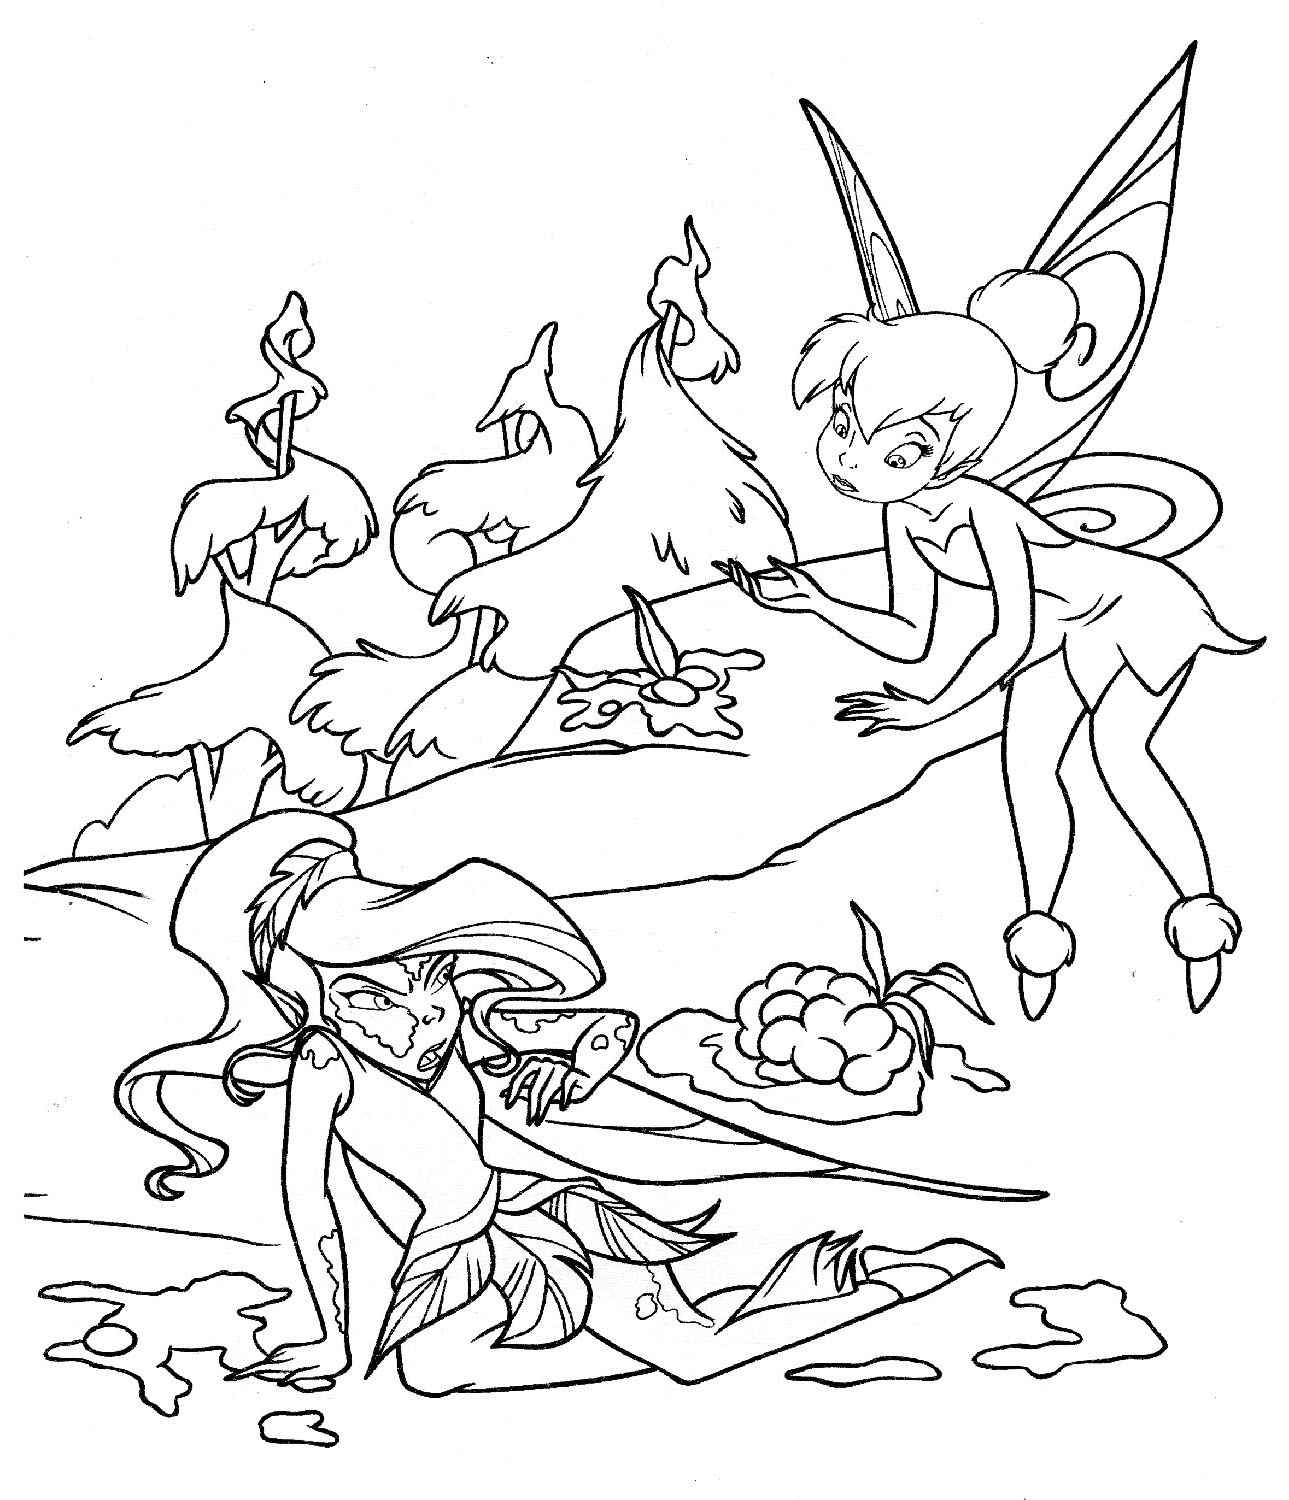 1289x1500 Peter Pan Coloring Pages Printable